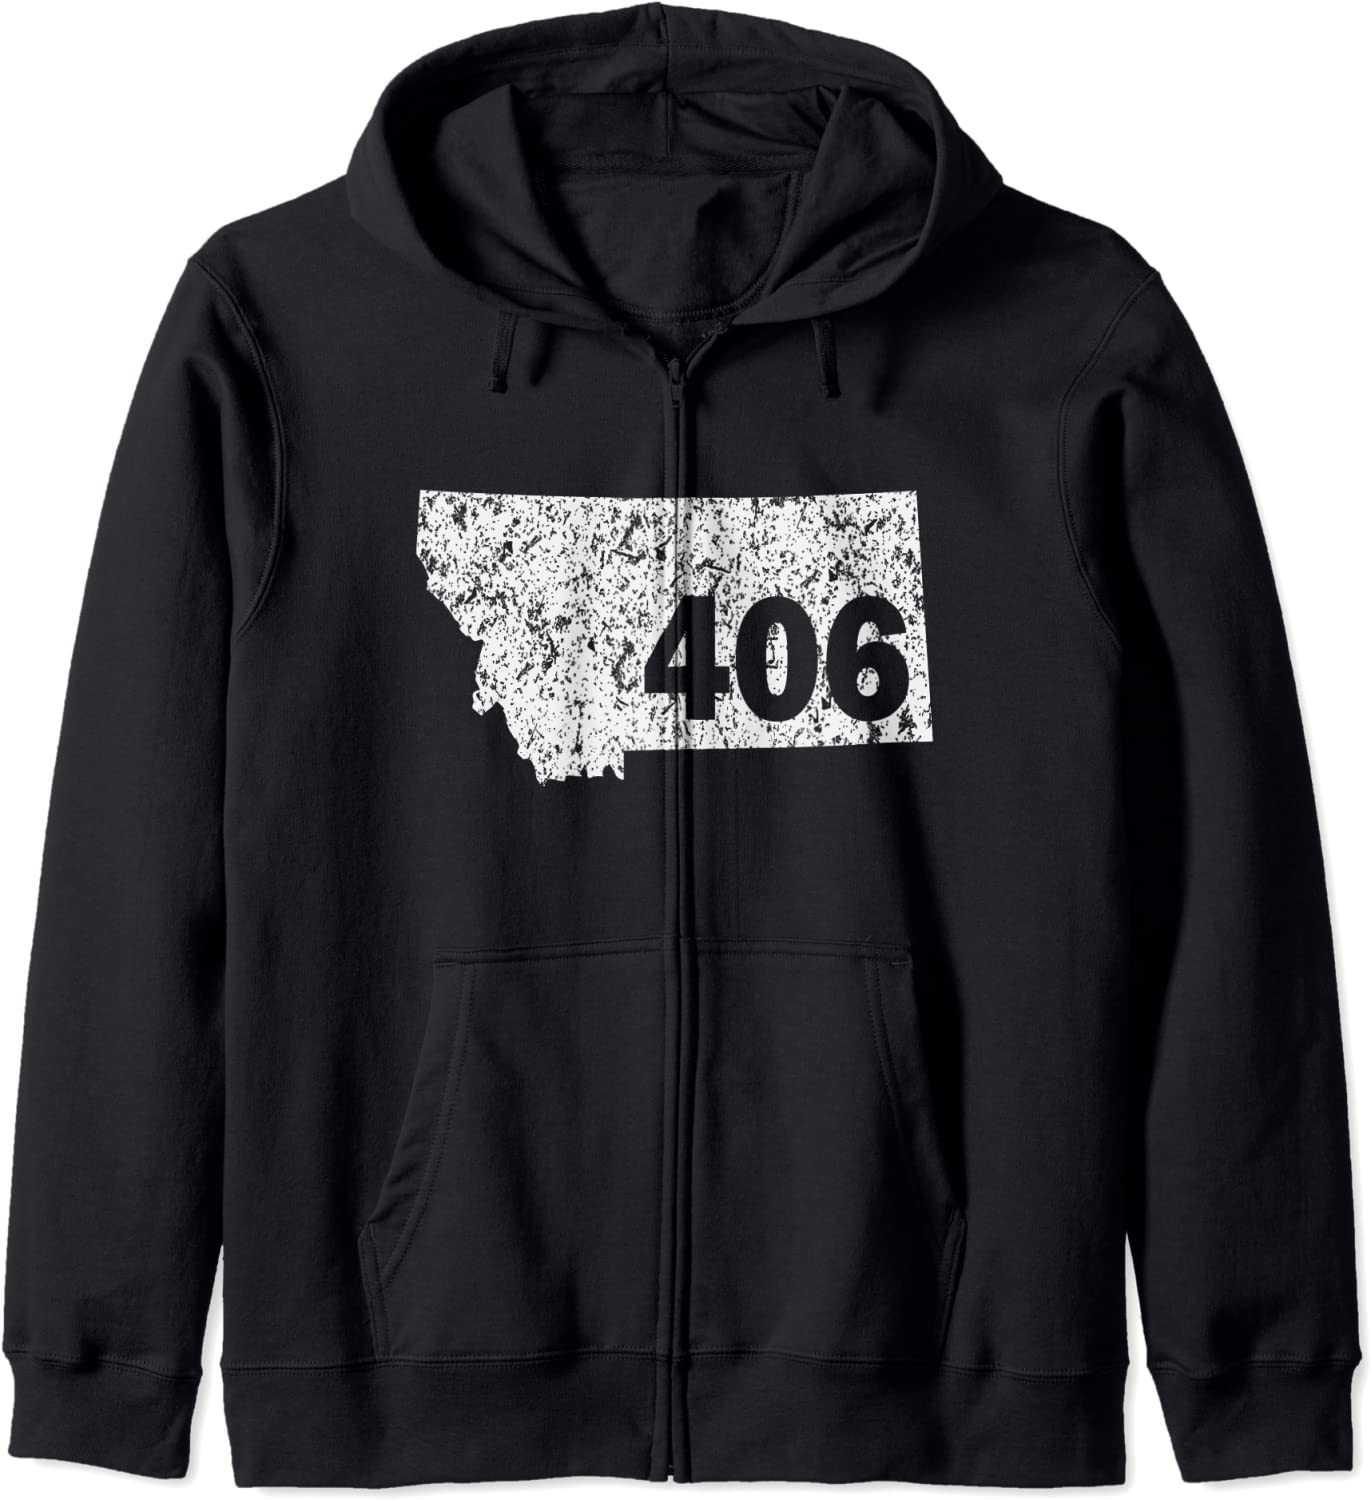 Special price for a limited time Montana 406 Area Code Zip Hoodie Genuine Free Shipping